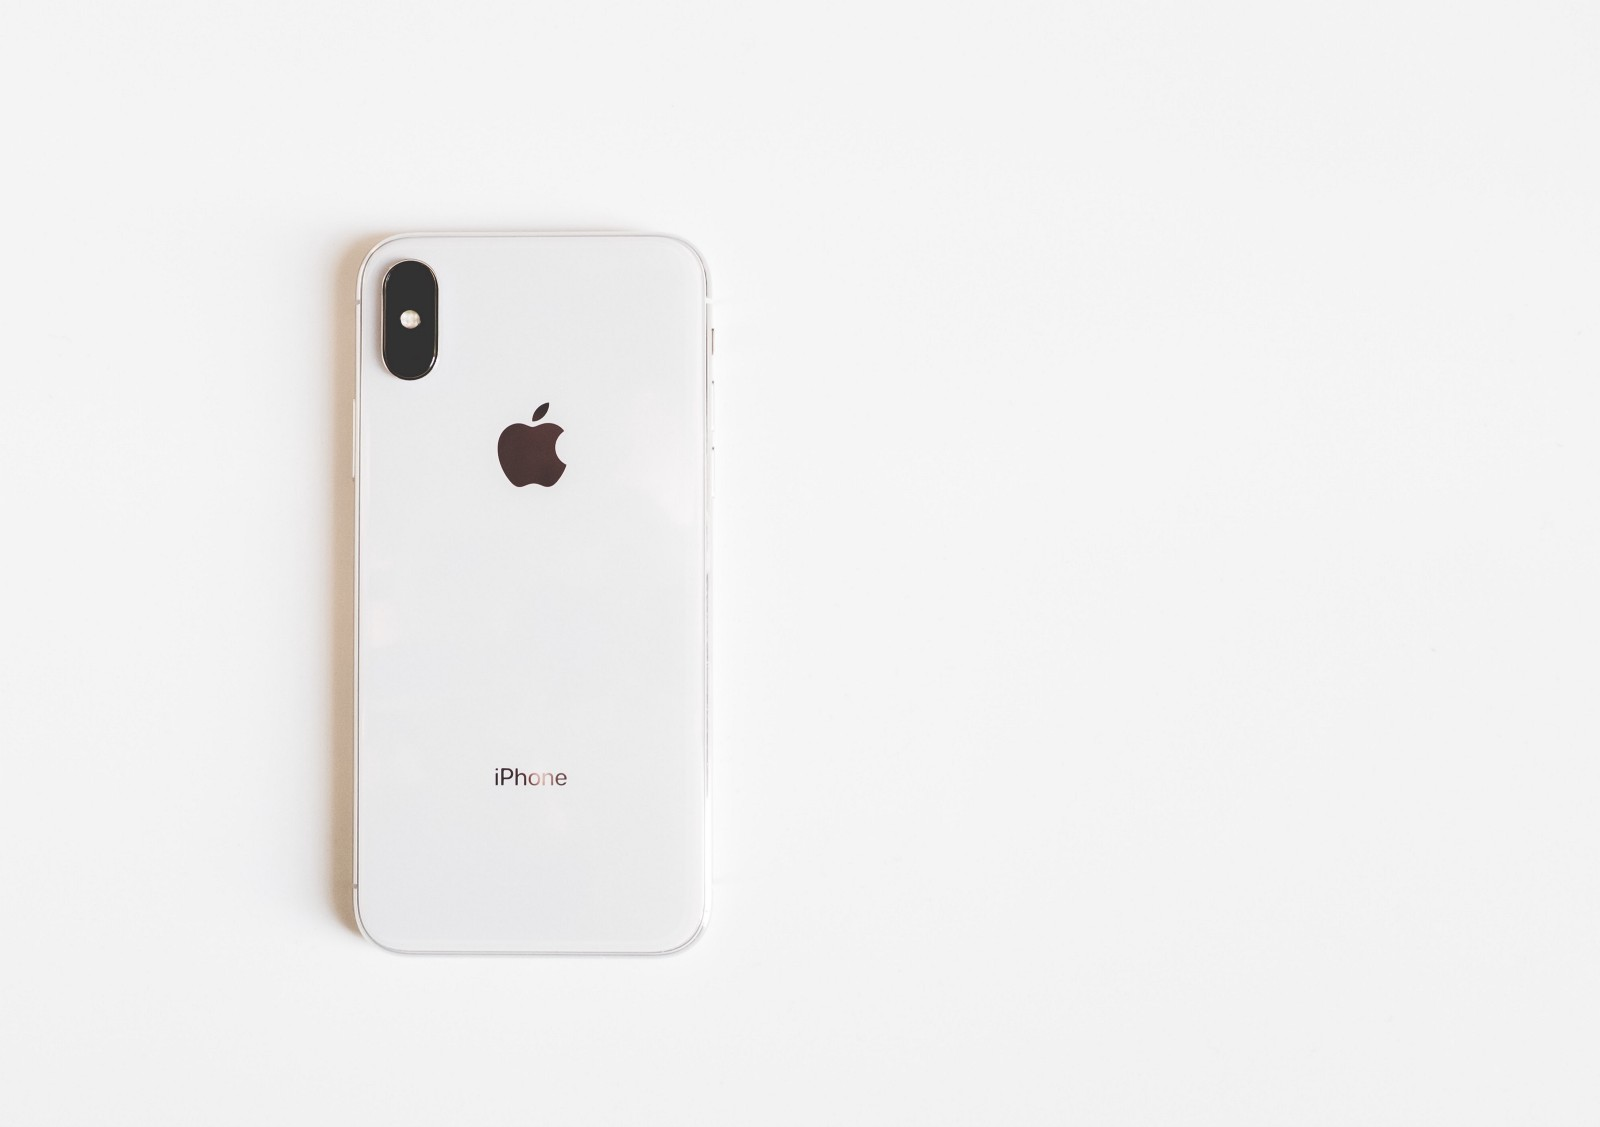 A Minimalist Phone That Will Make You Smarter